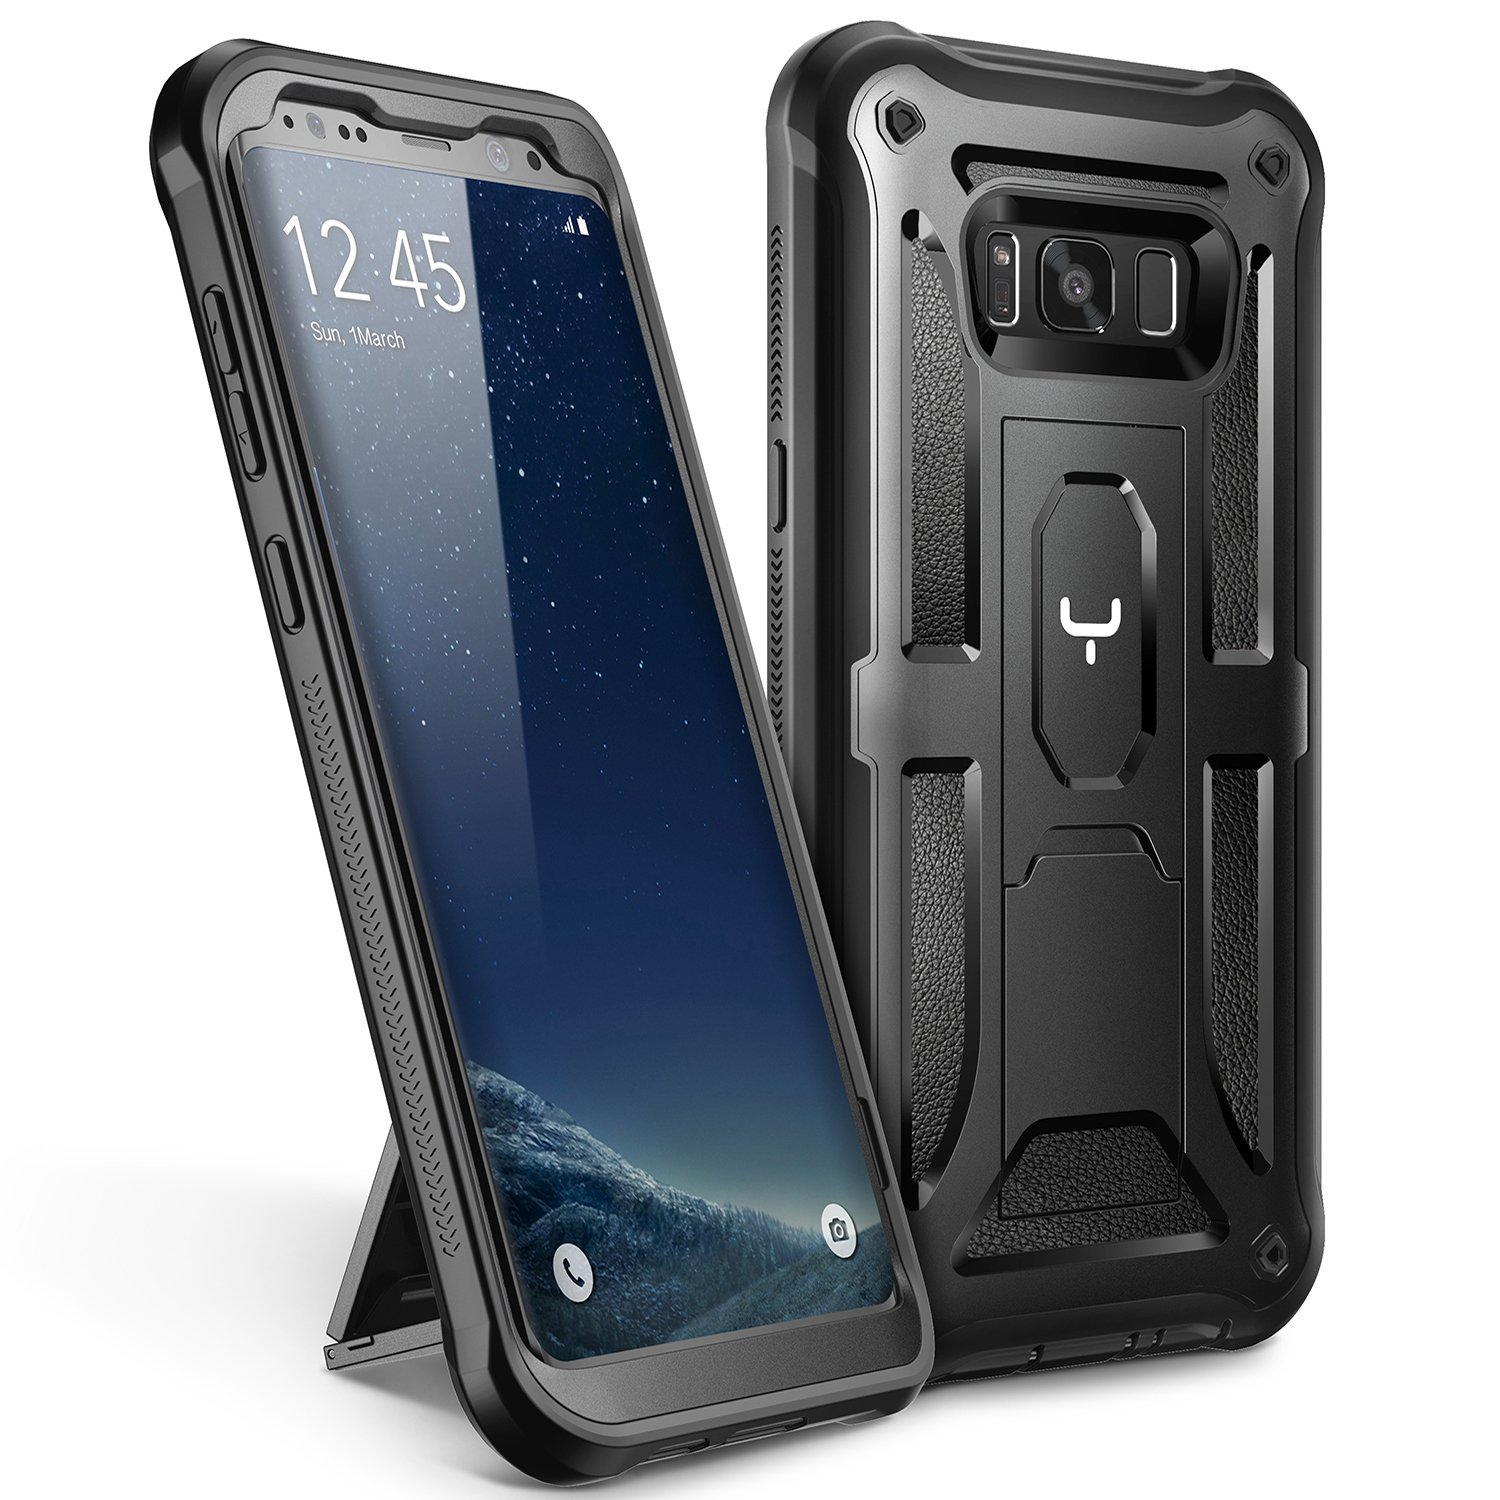 Best Samsung Galaxy S8 Cases Spigen Case Thin Fit Black Whether Youre An Adventurer Or Blue Collar Worker Some People Need That Extra Level Of Protection Only Rugged Can Offer